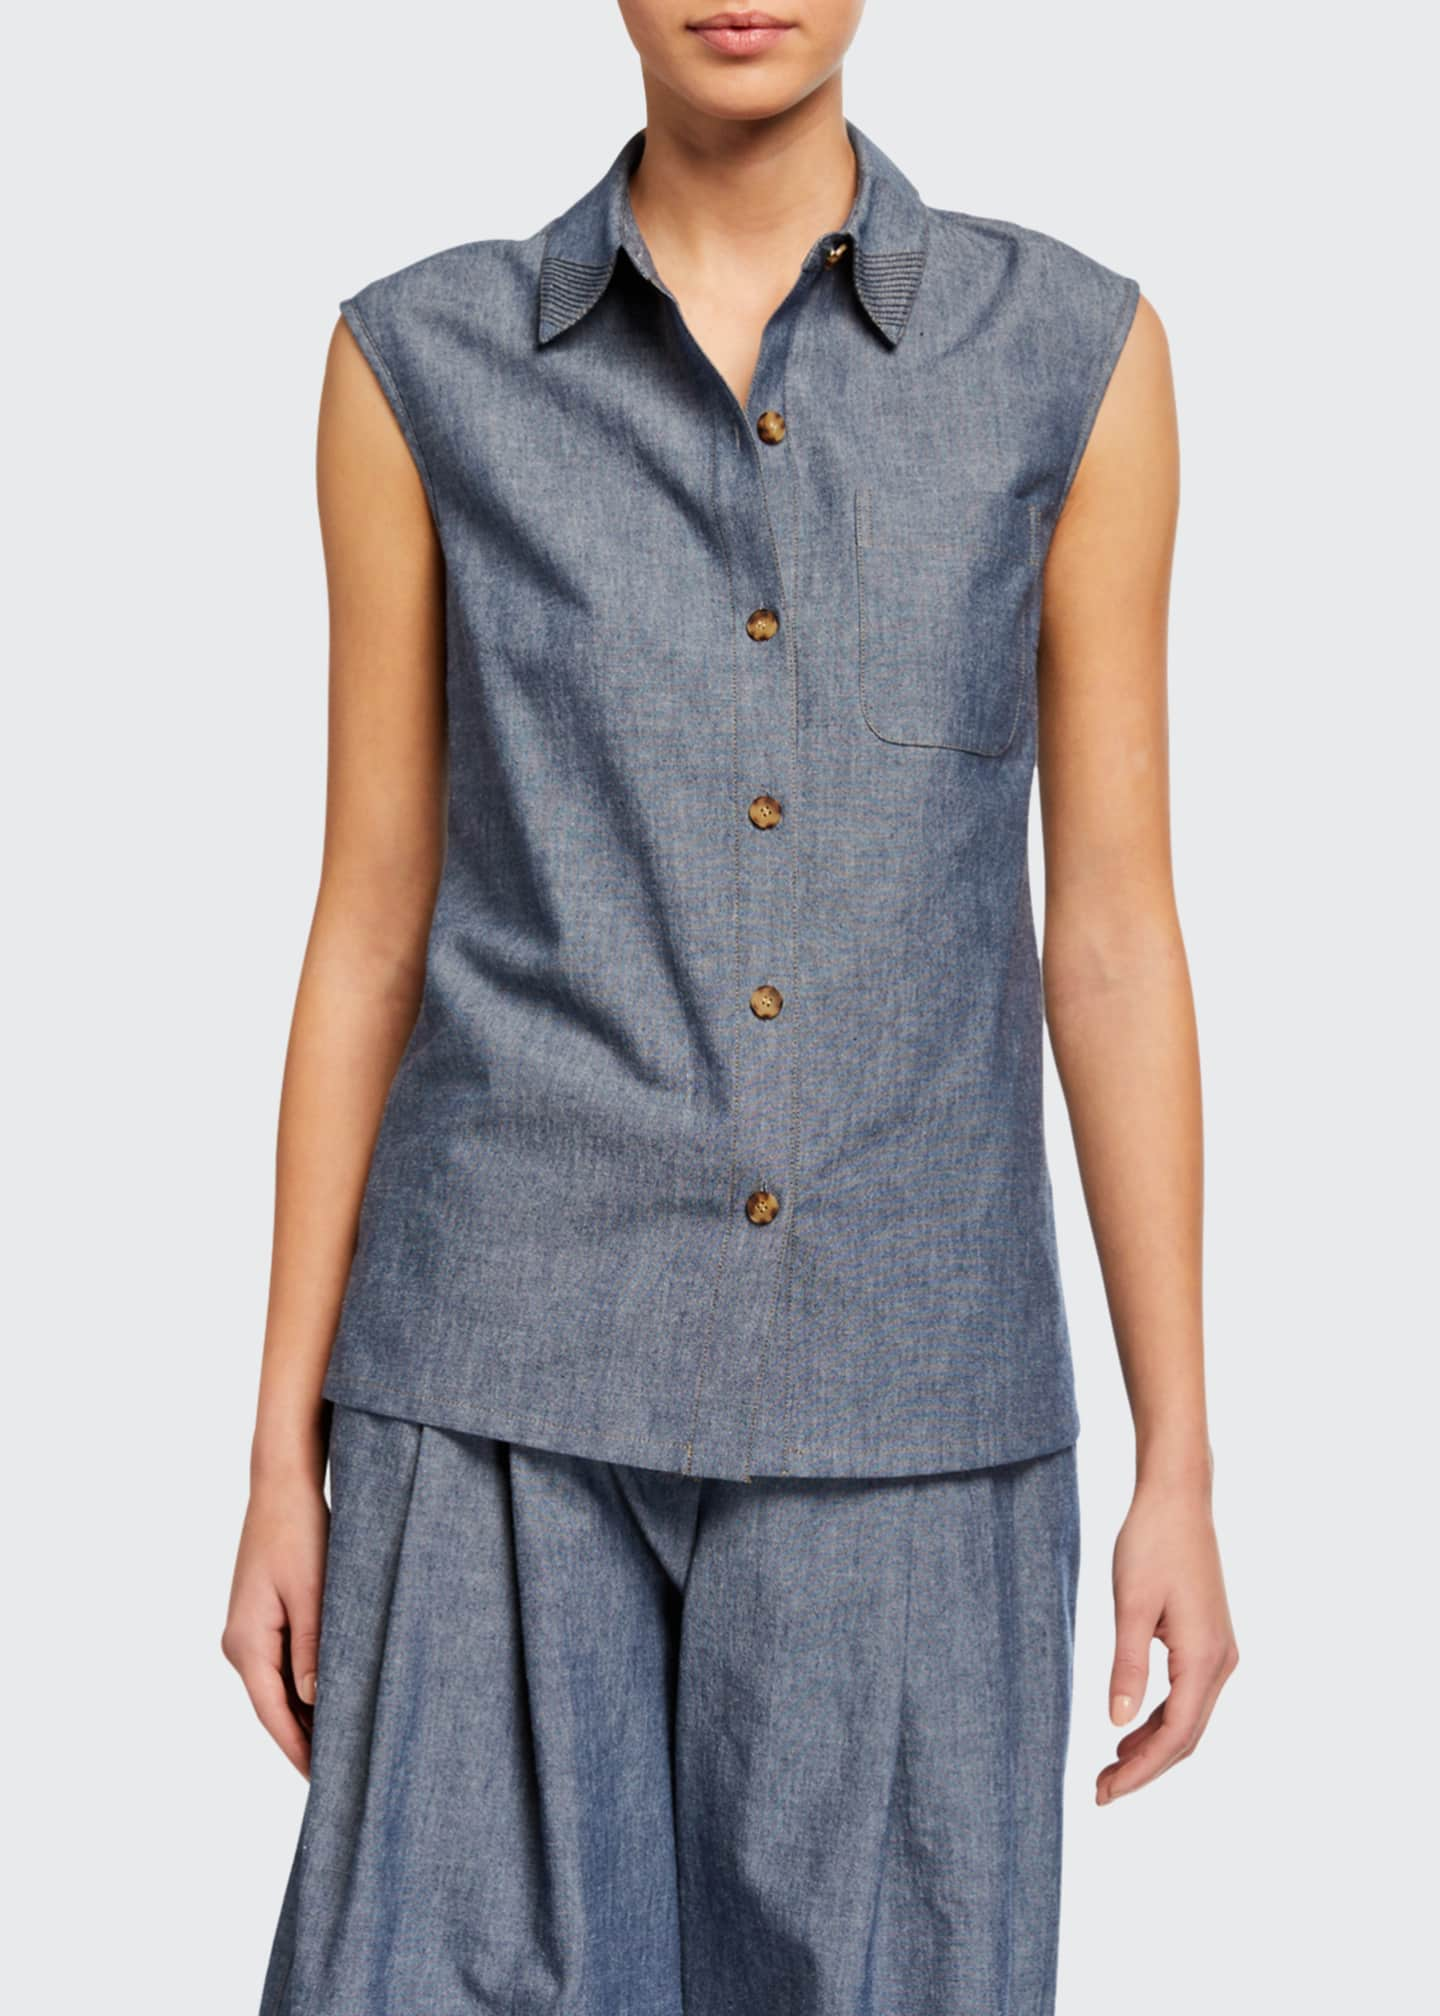 Image 1 of 2: Yani Washi Cloth Sleeveless Button-Front Blouse